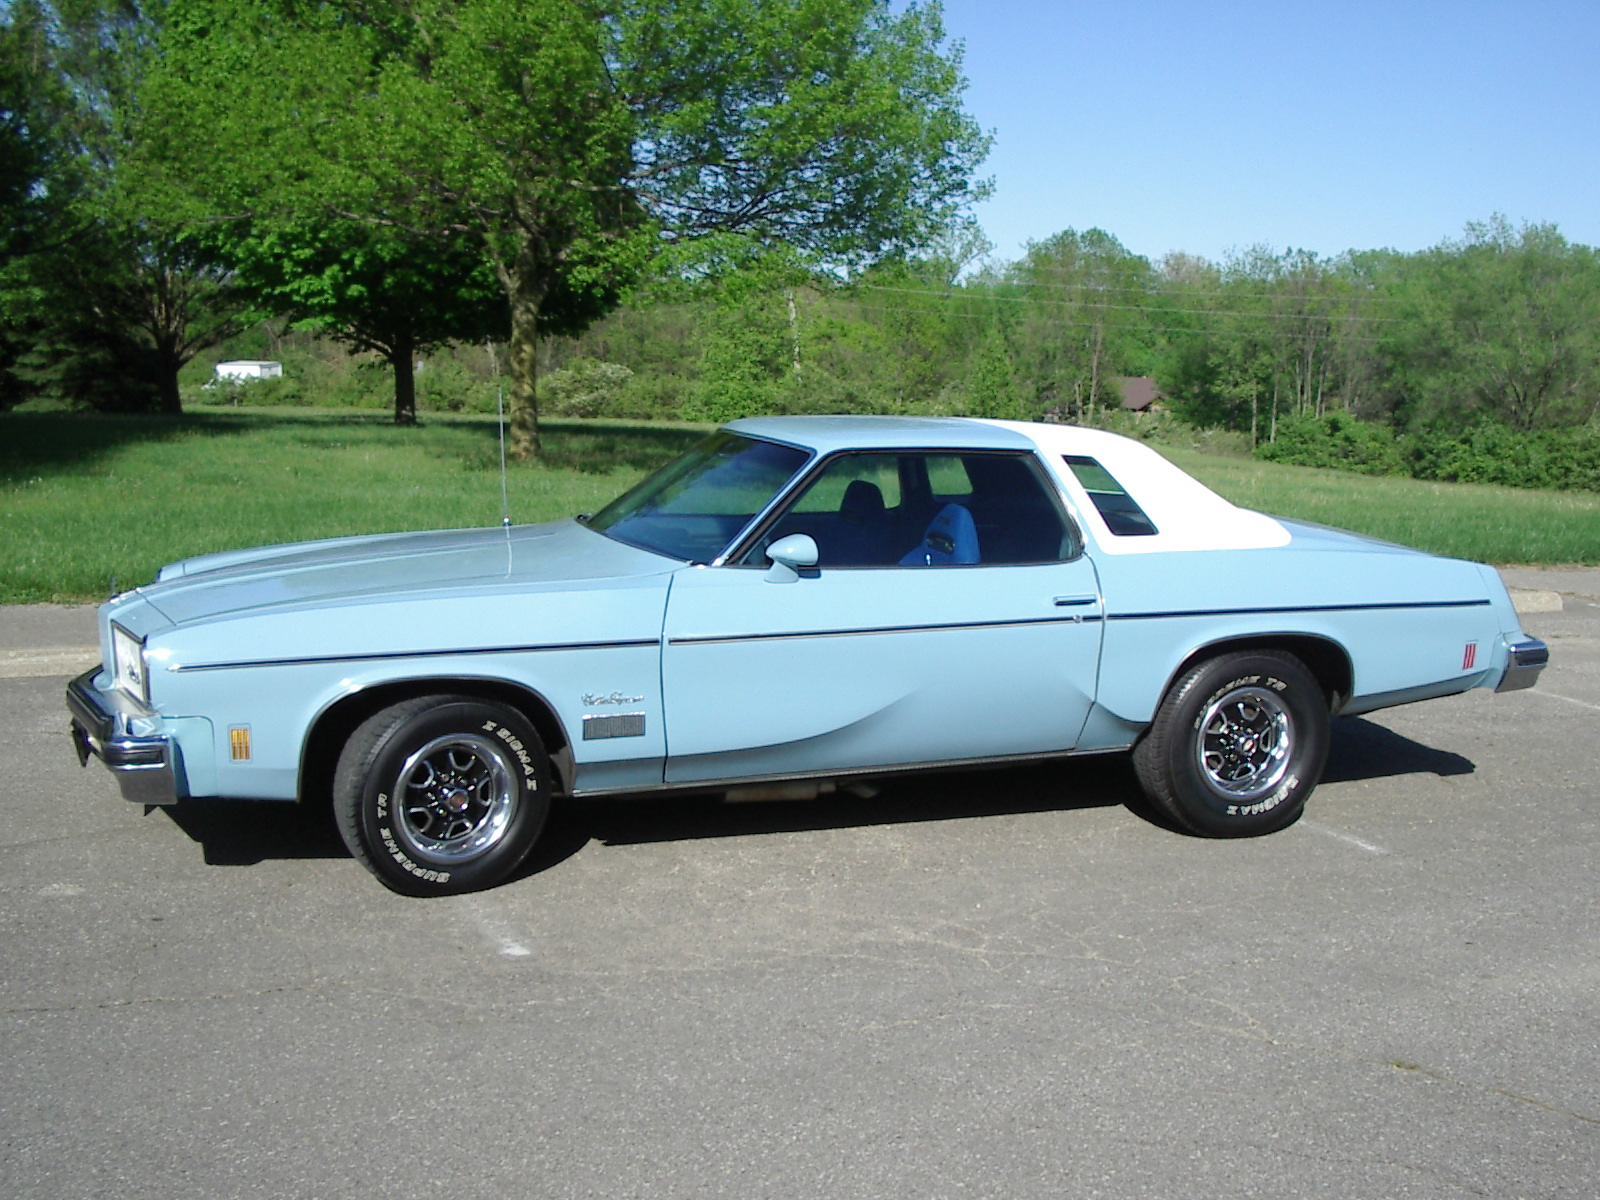 1975 oldsmobile cutlass supreme pictures cargurus for 1975 oldsmobile cutlass salon